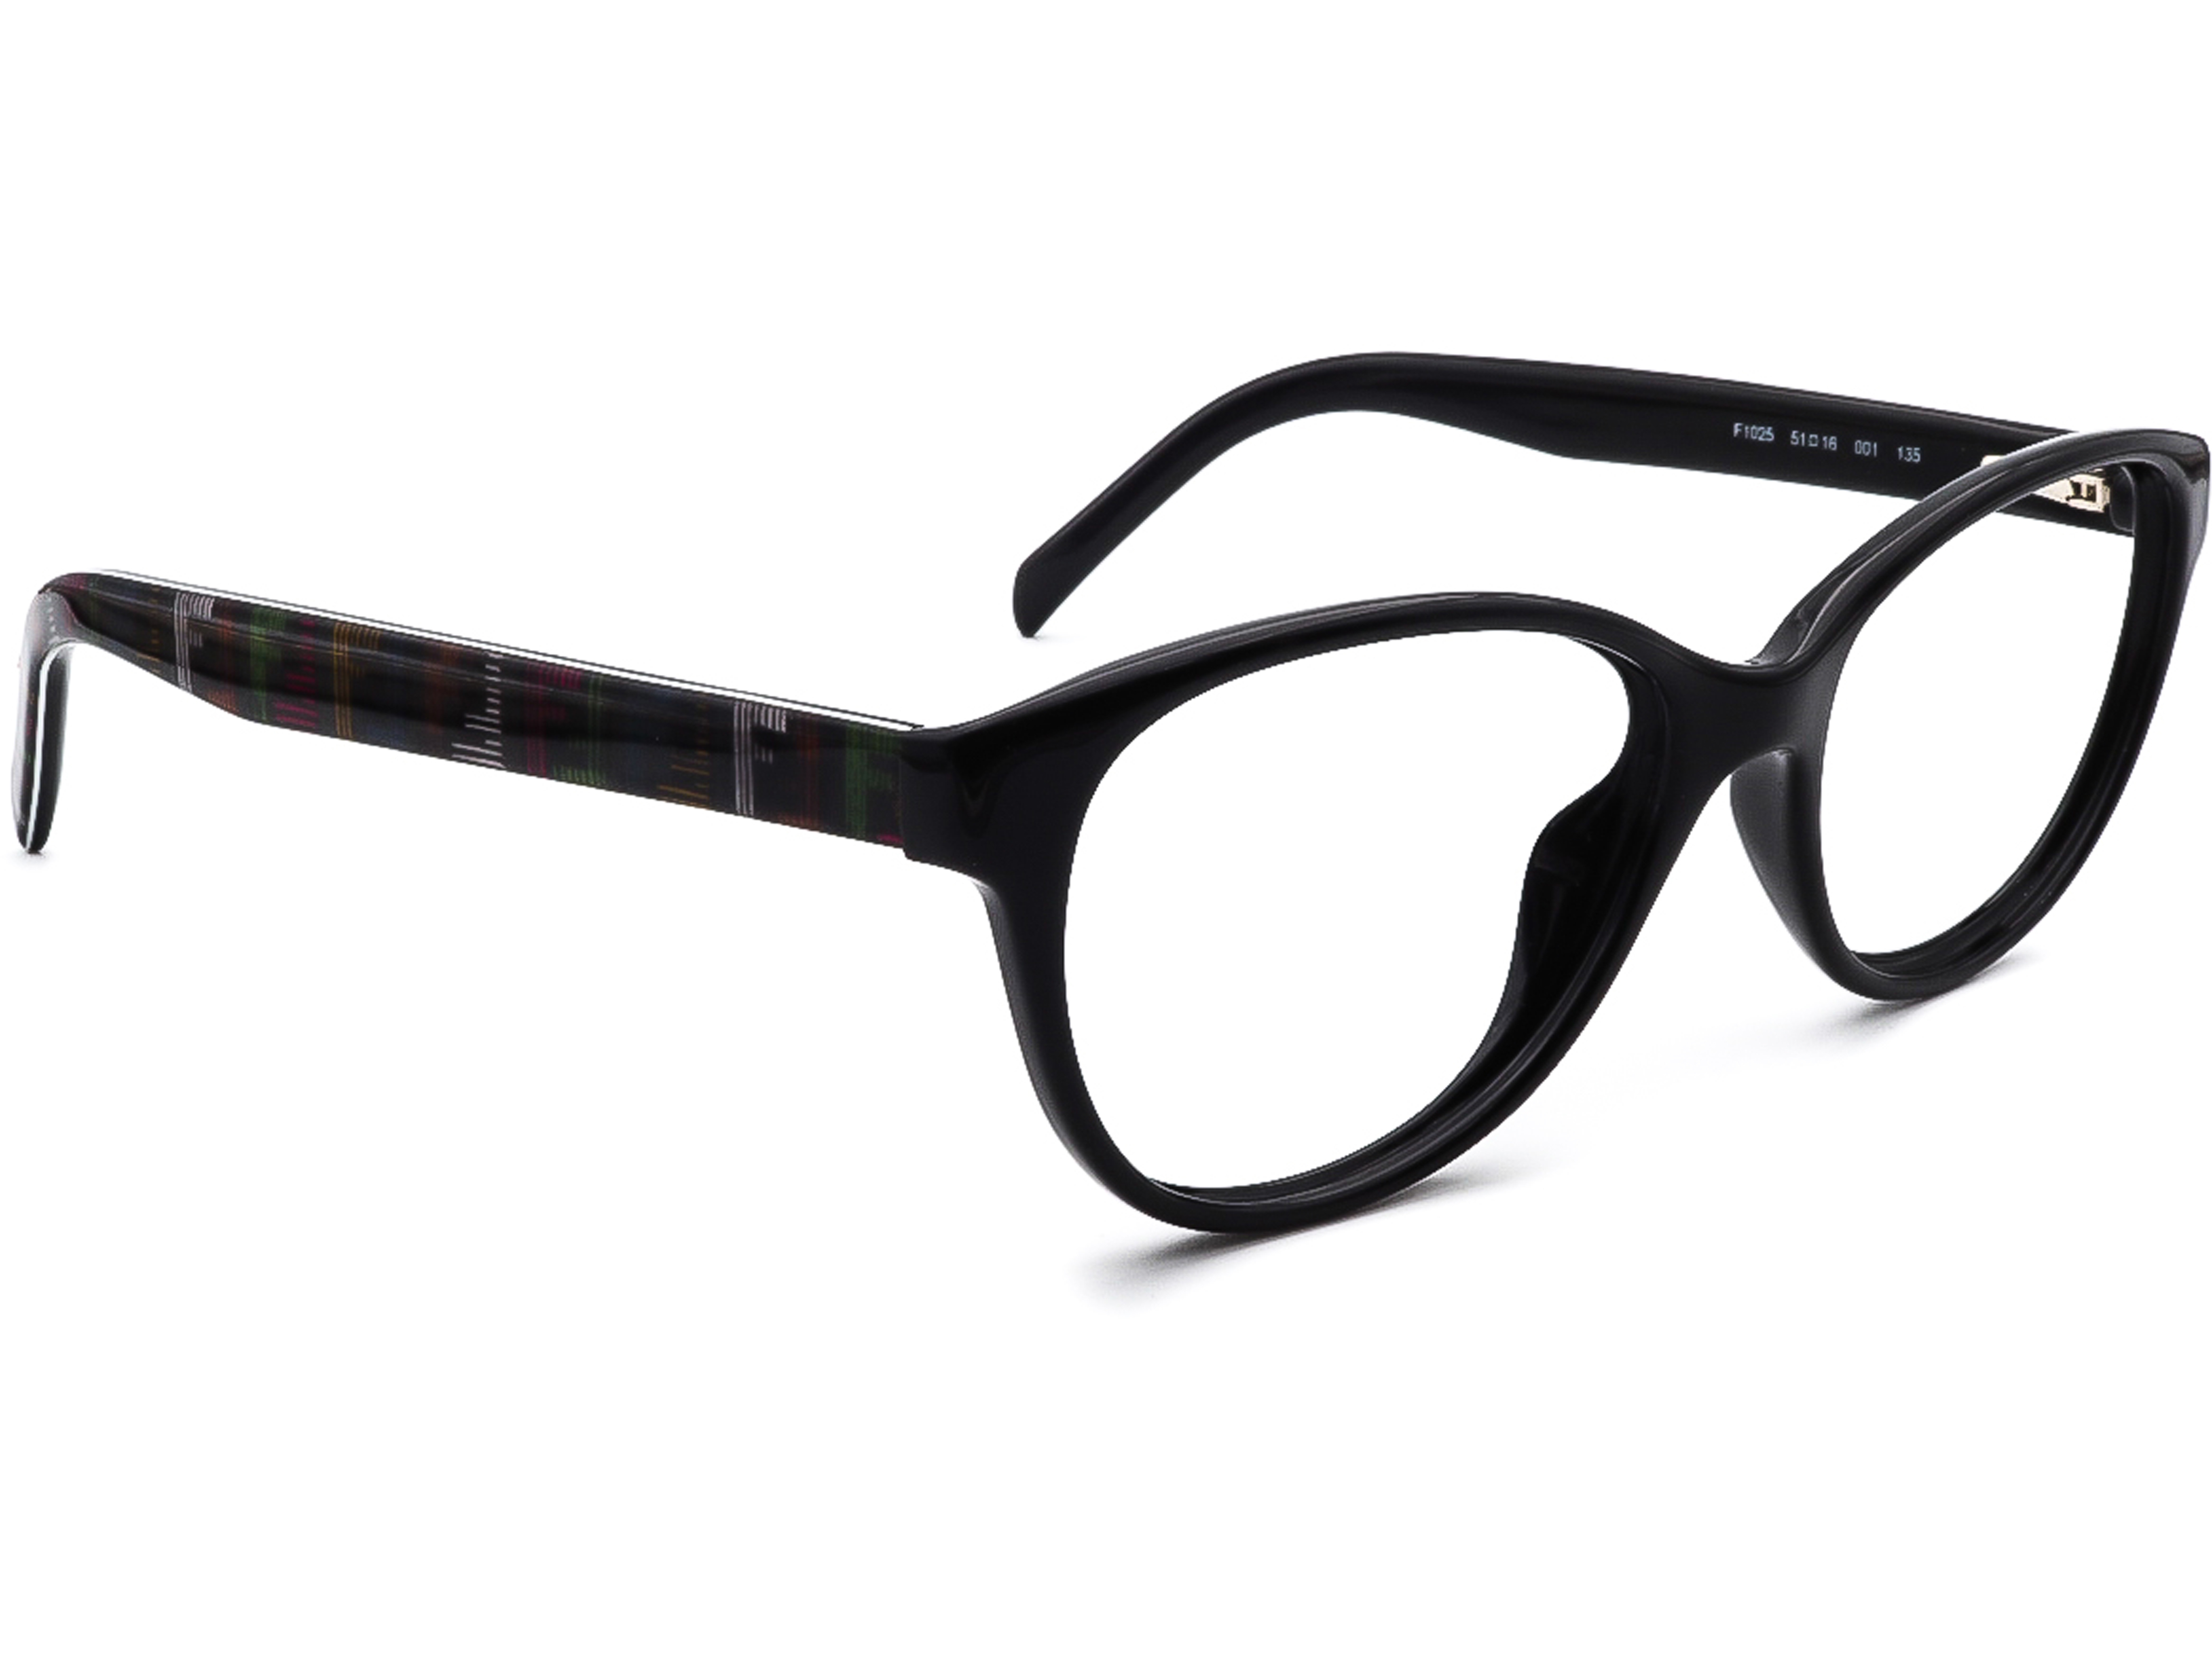 Fendi F1025 001 Eyeglasses